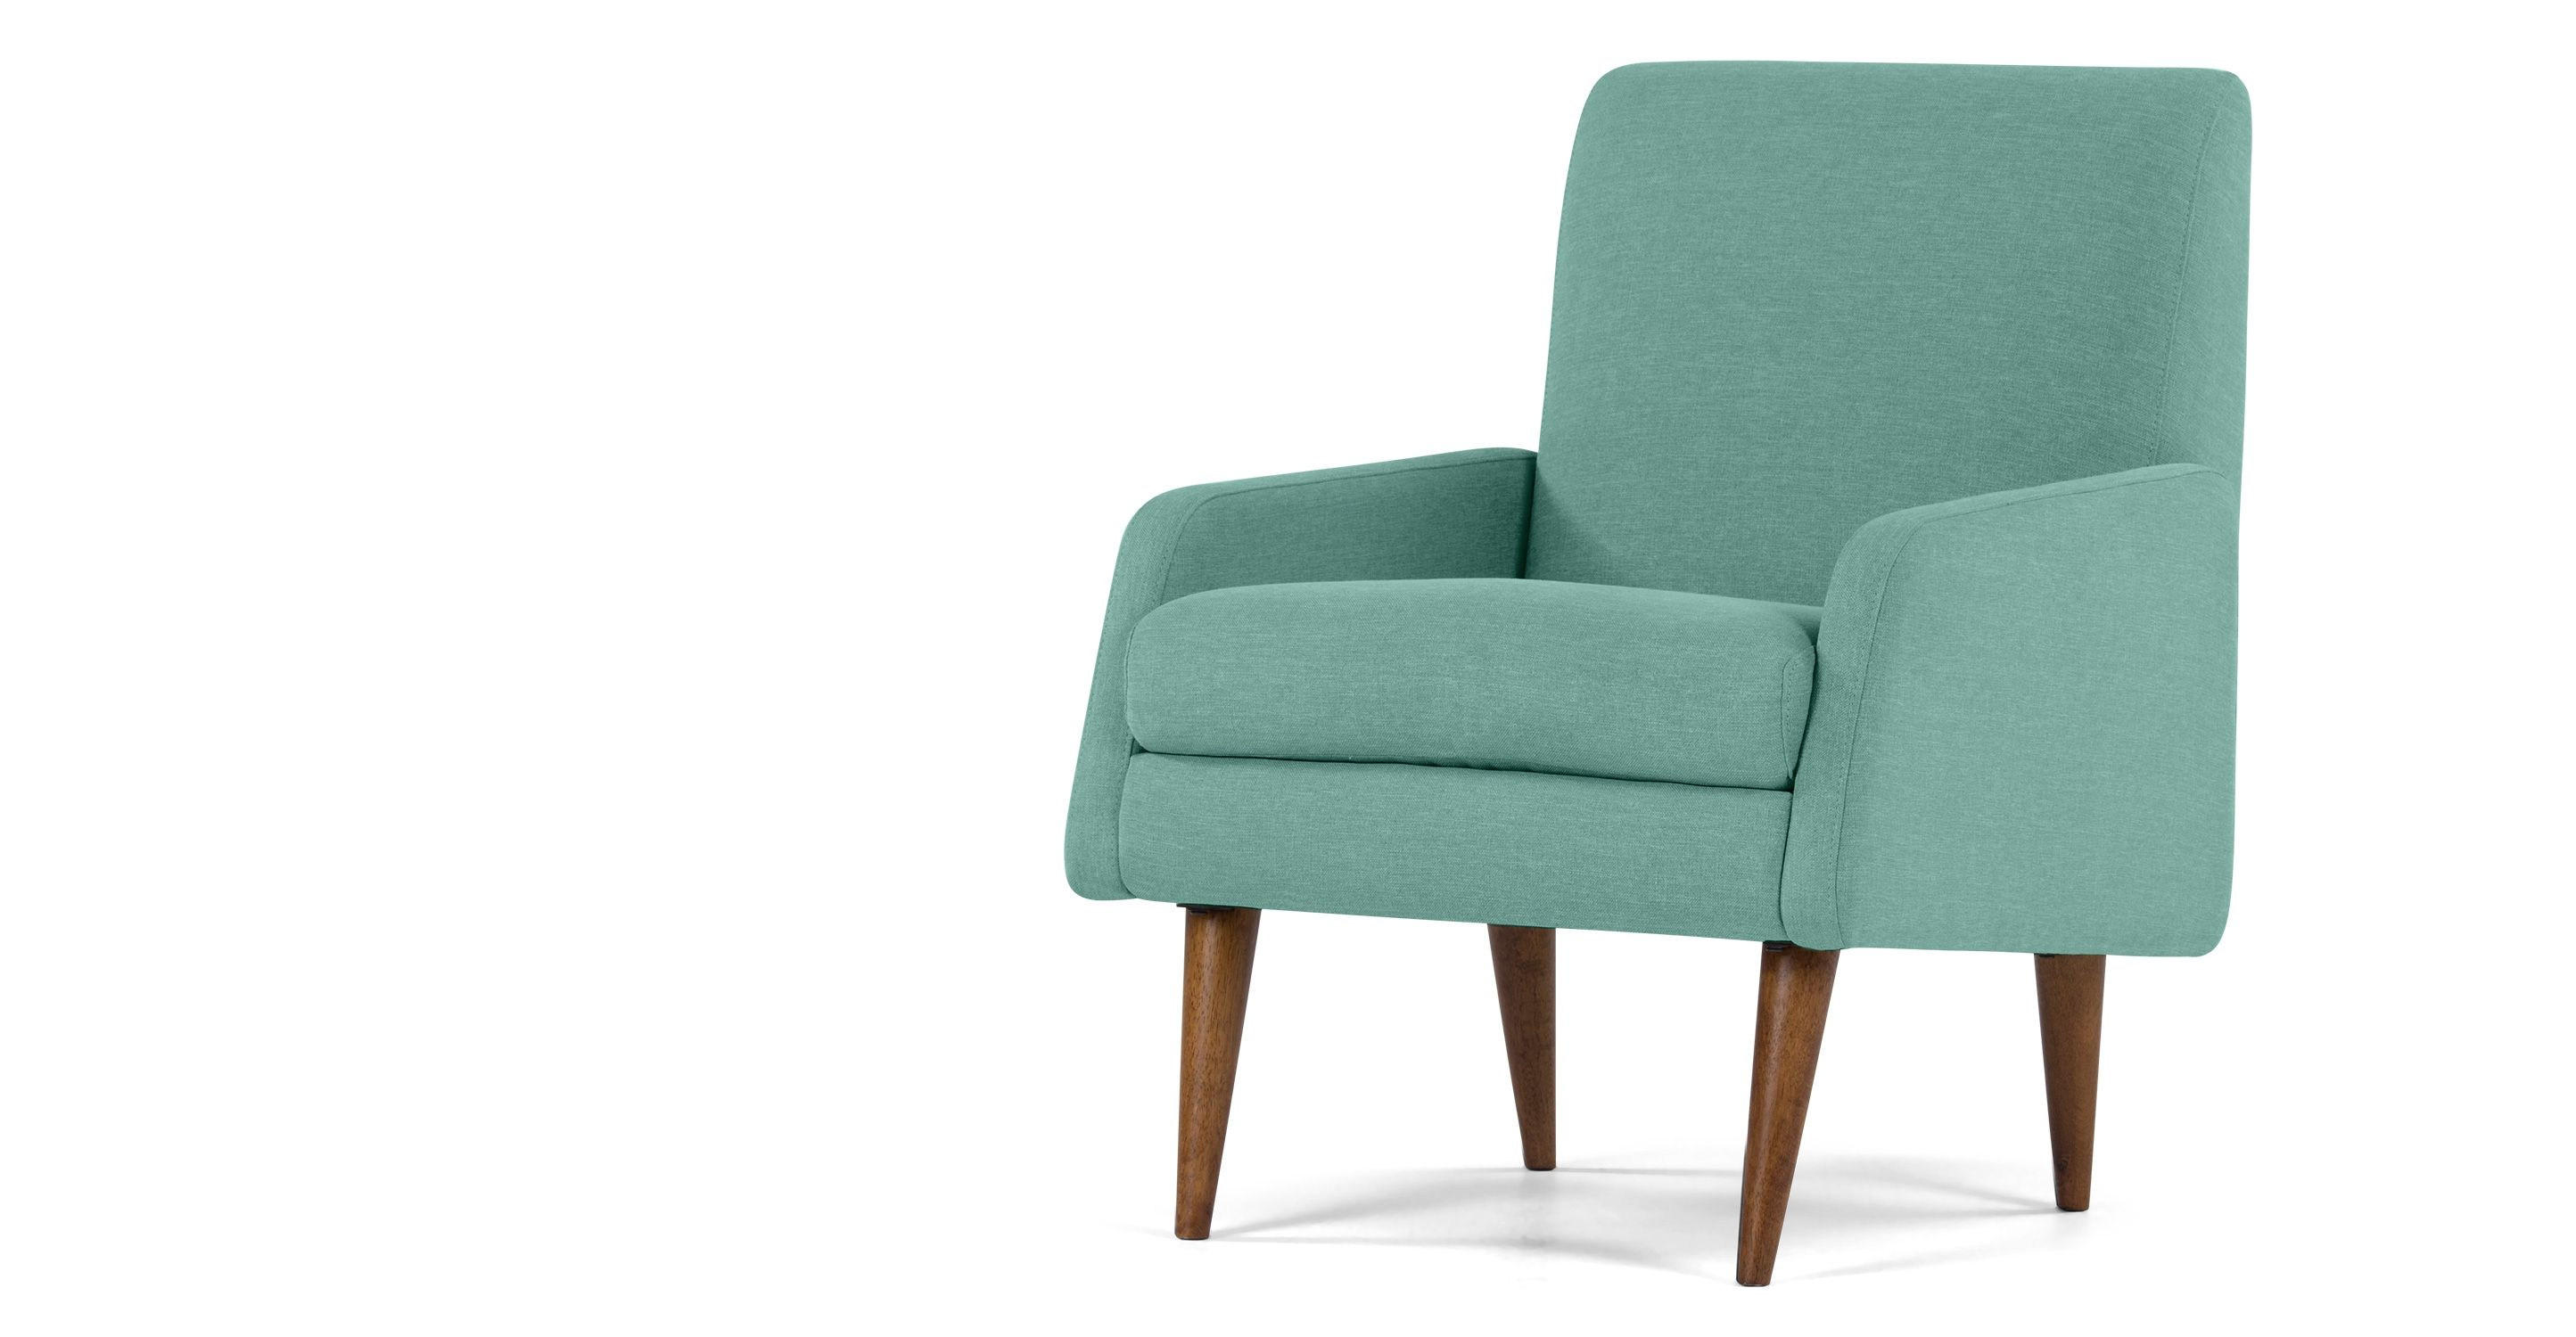 Profile Chair Topaz Linen Made Com Our New House Accent